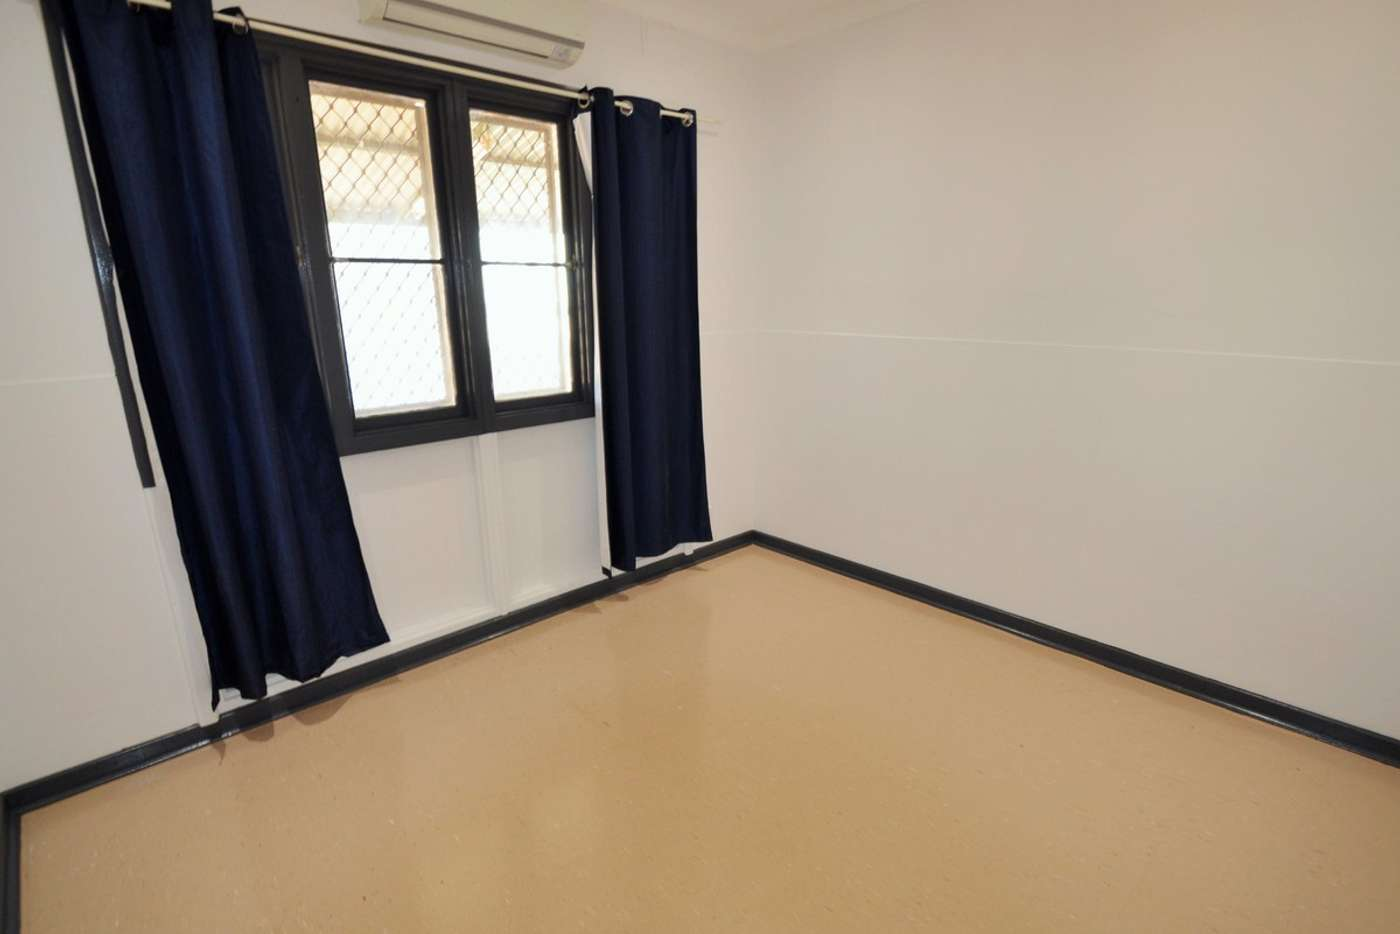 Seventh view of Homely house listing, 11 Pedlar Street, South Hedland WA 6722